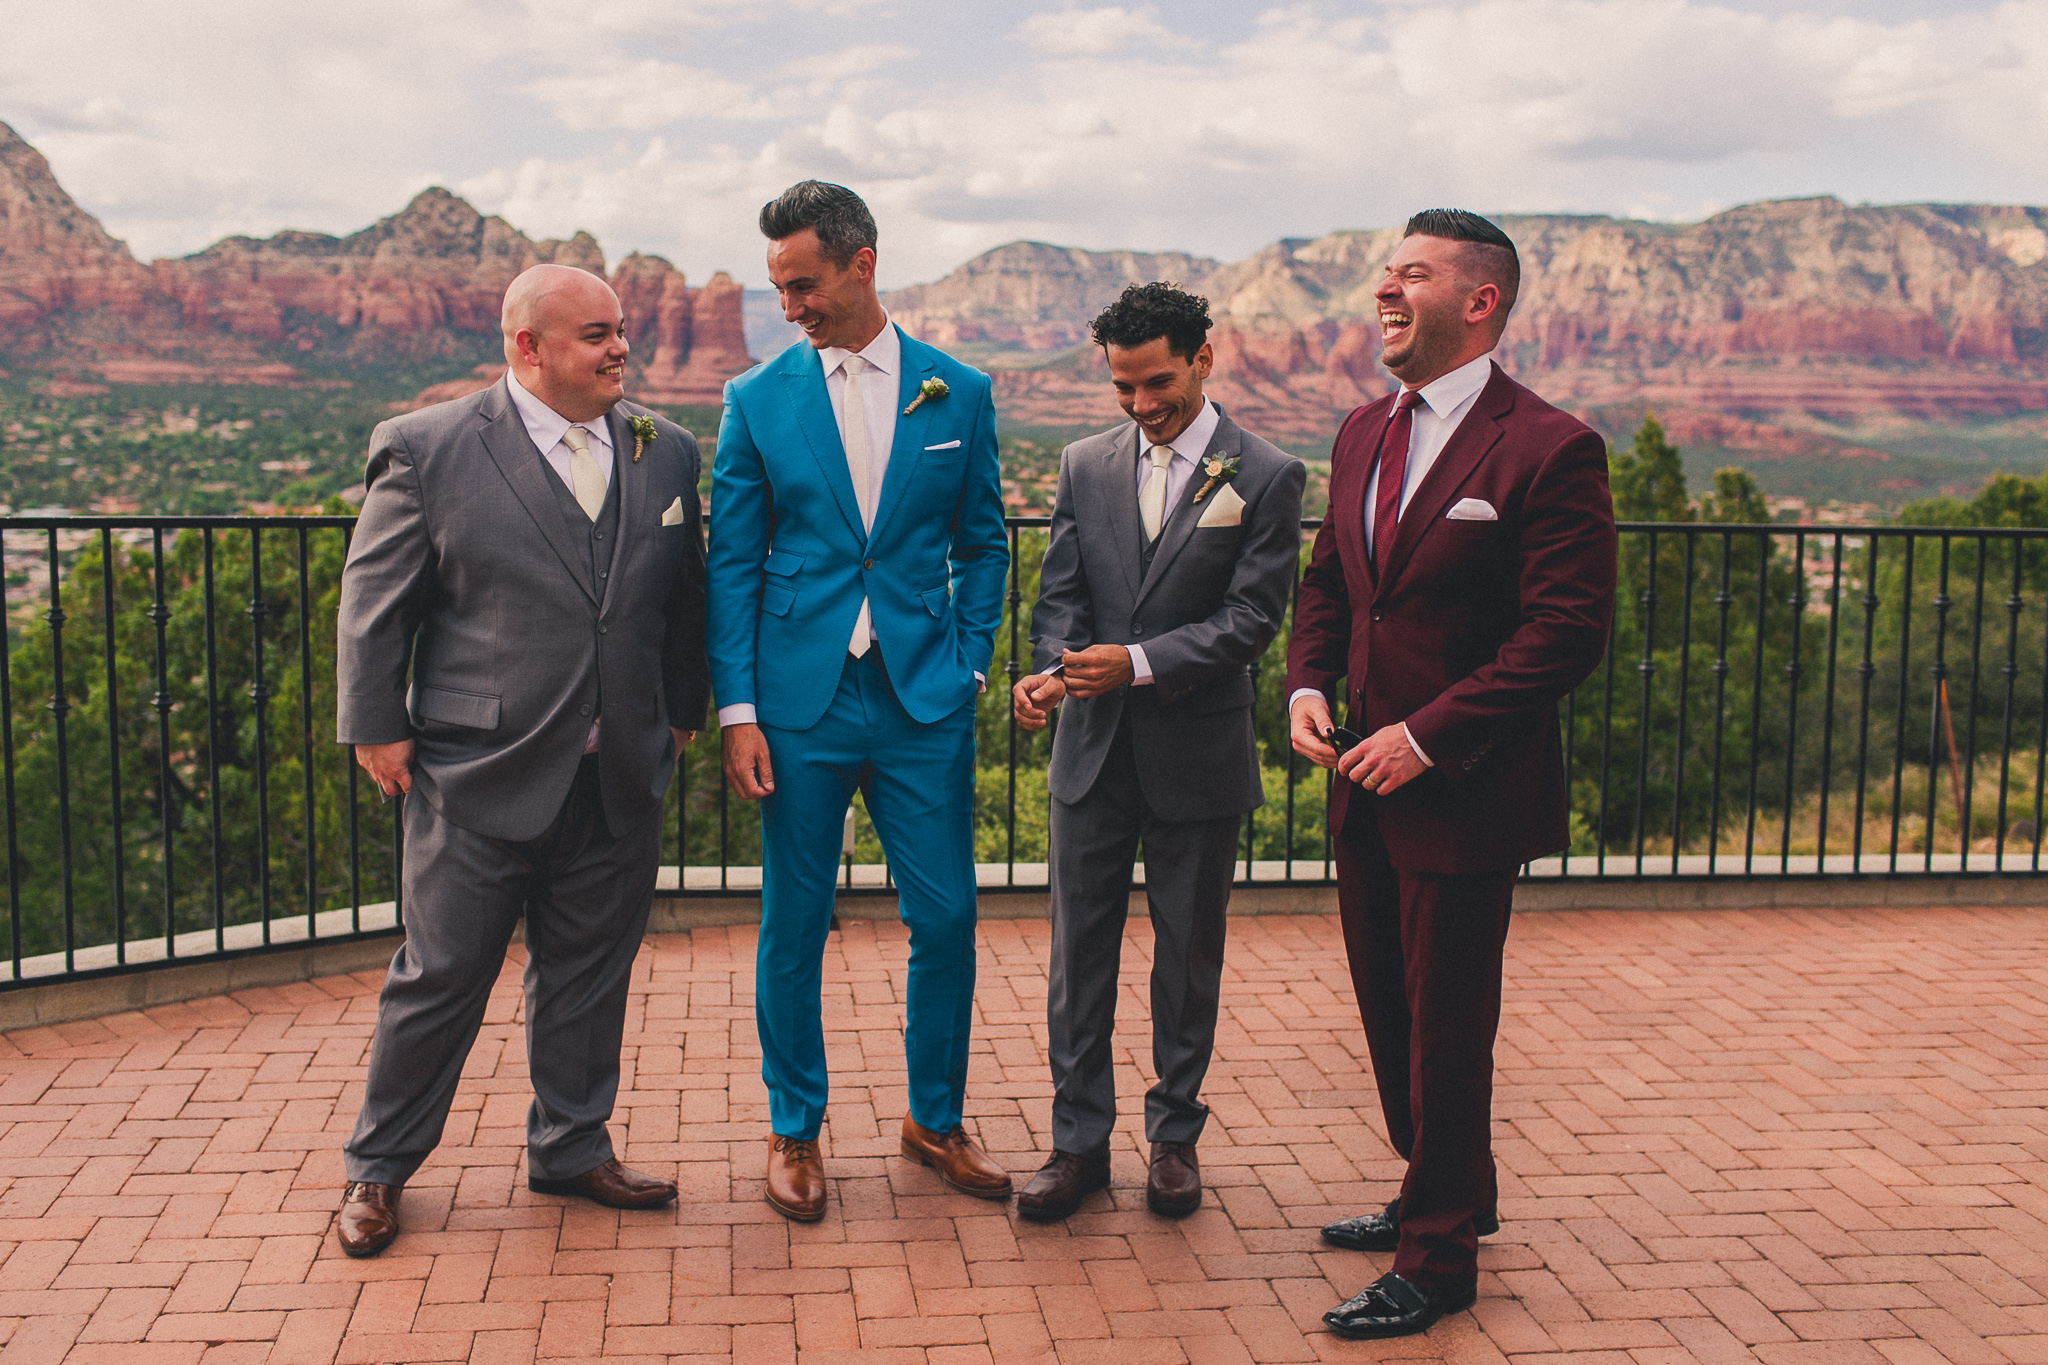 Groomsman in suits